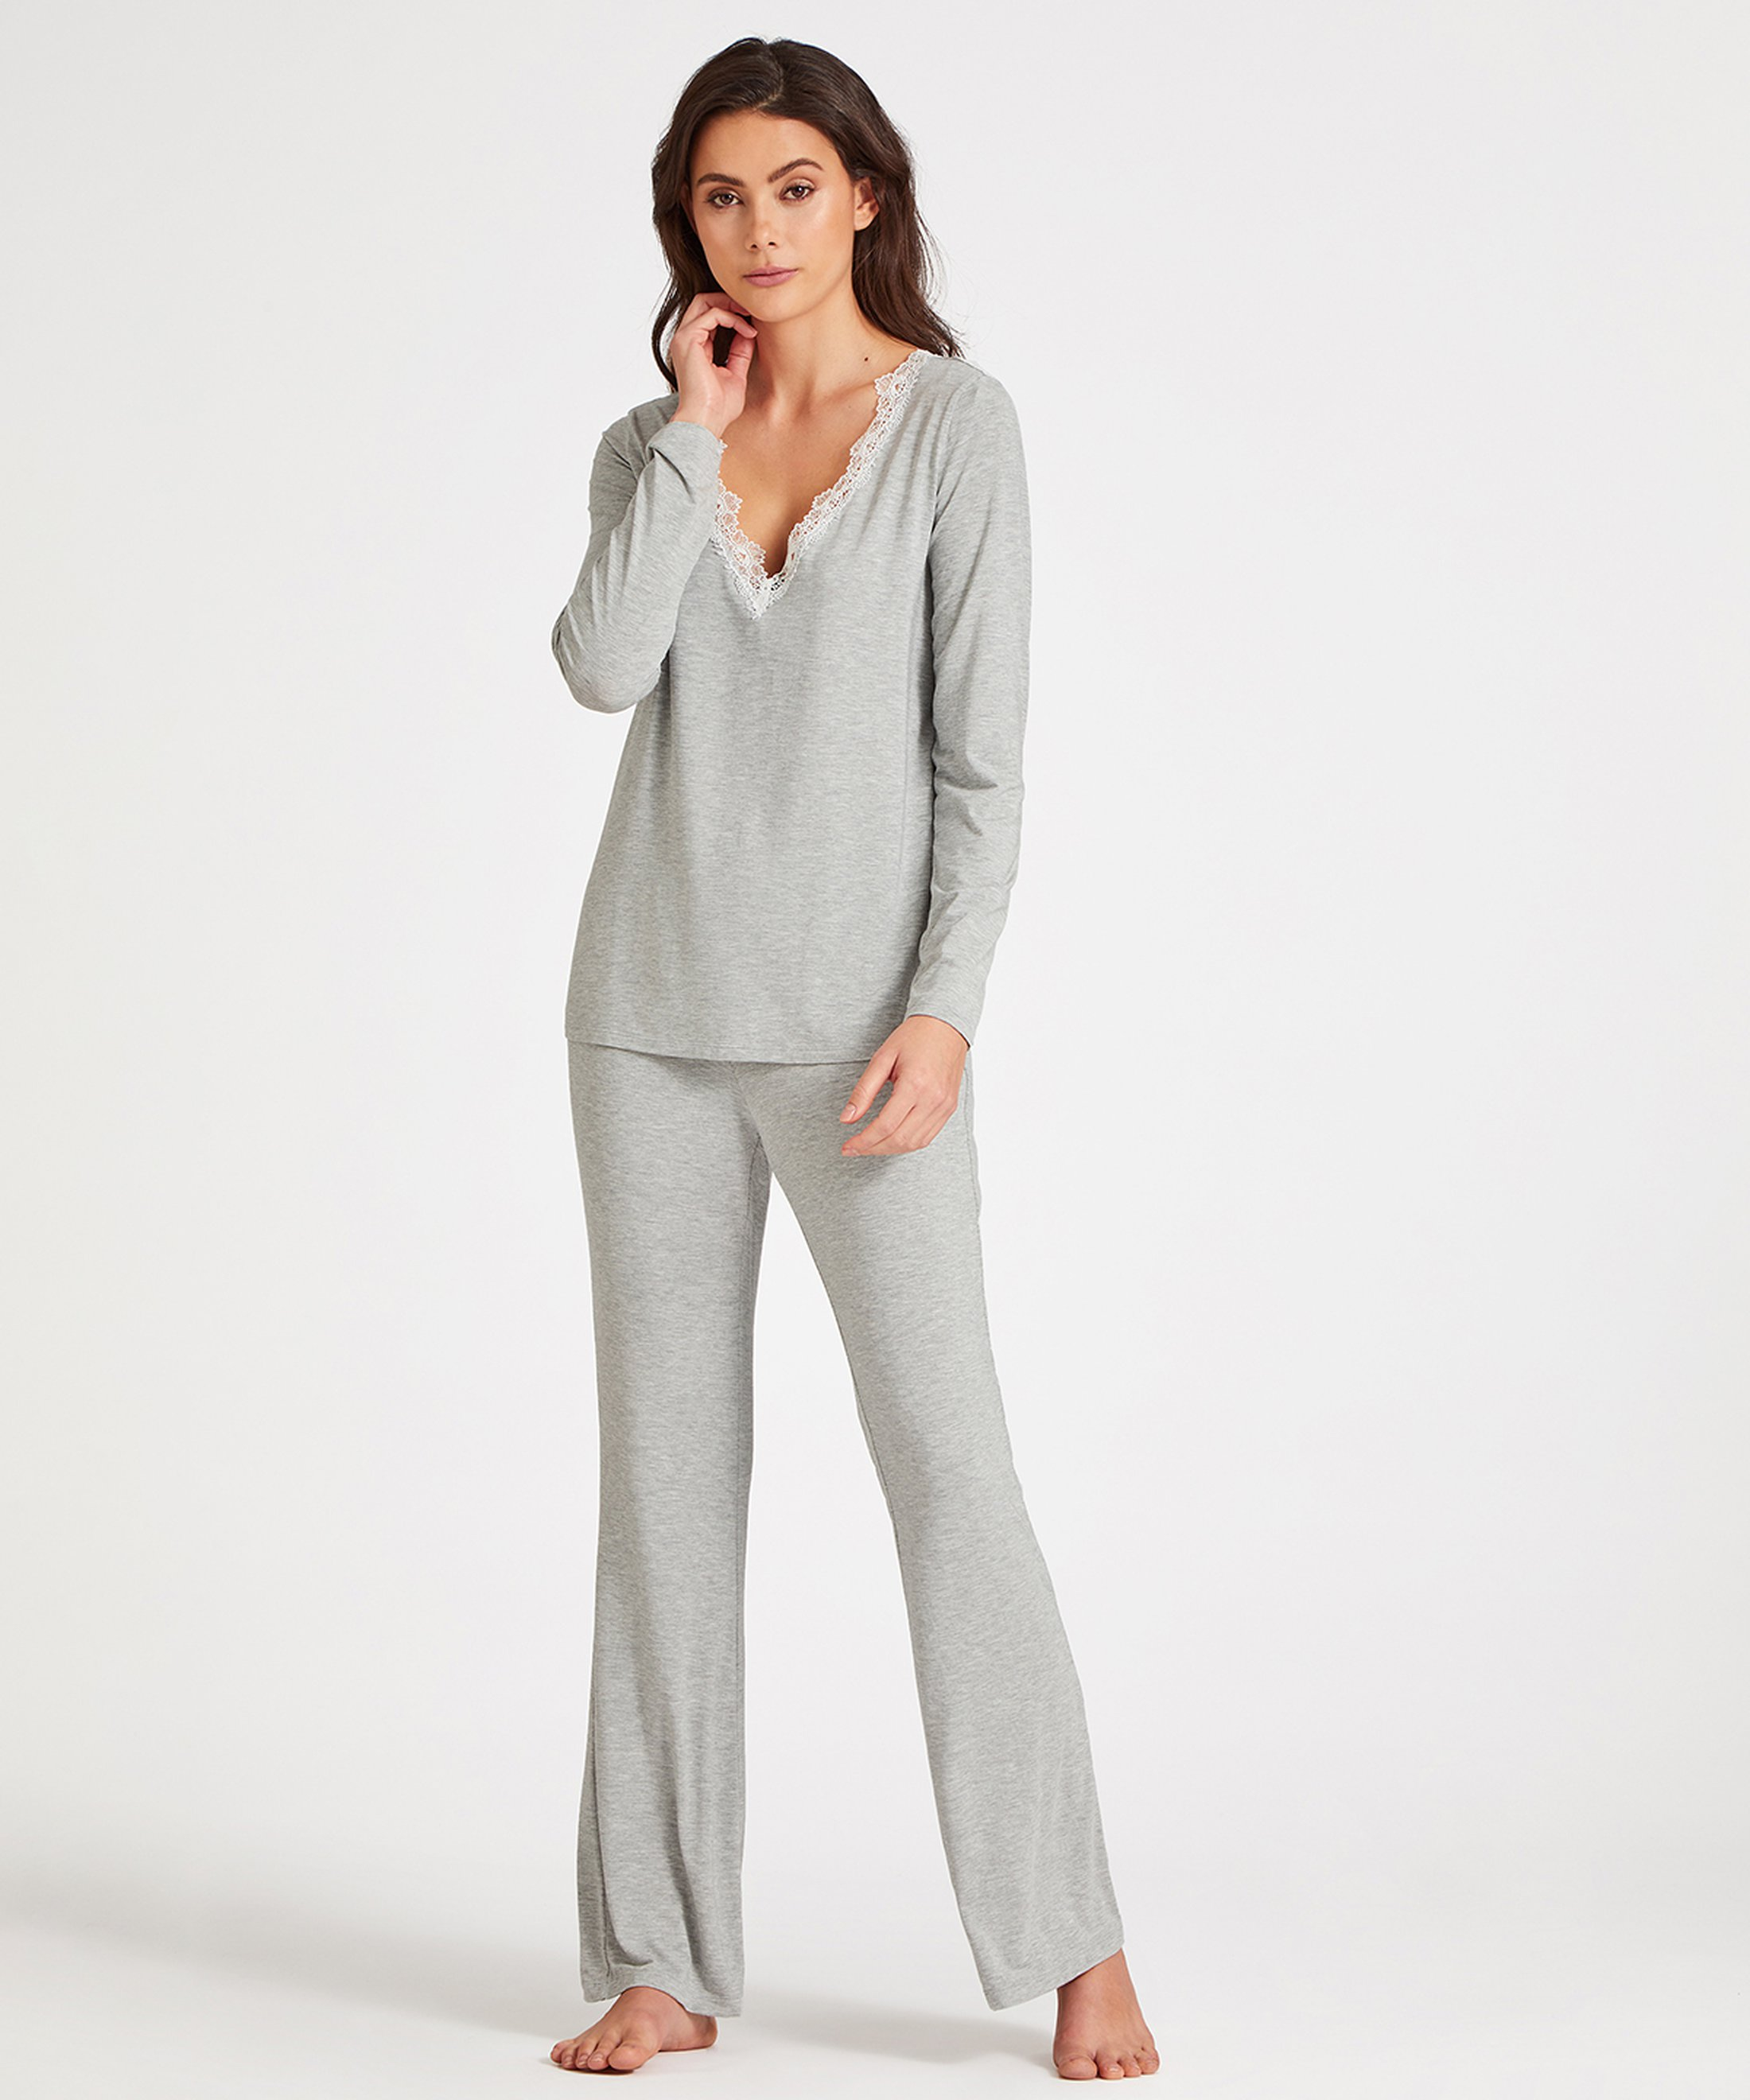 SWEET BLISS Top manches longues Gris Graphite | Aubade